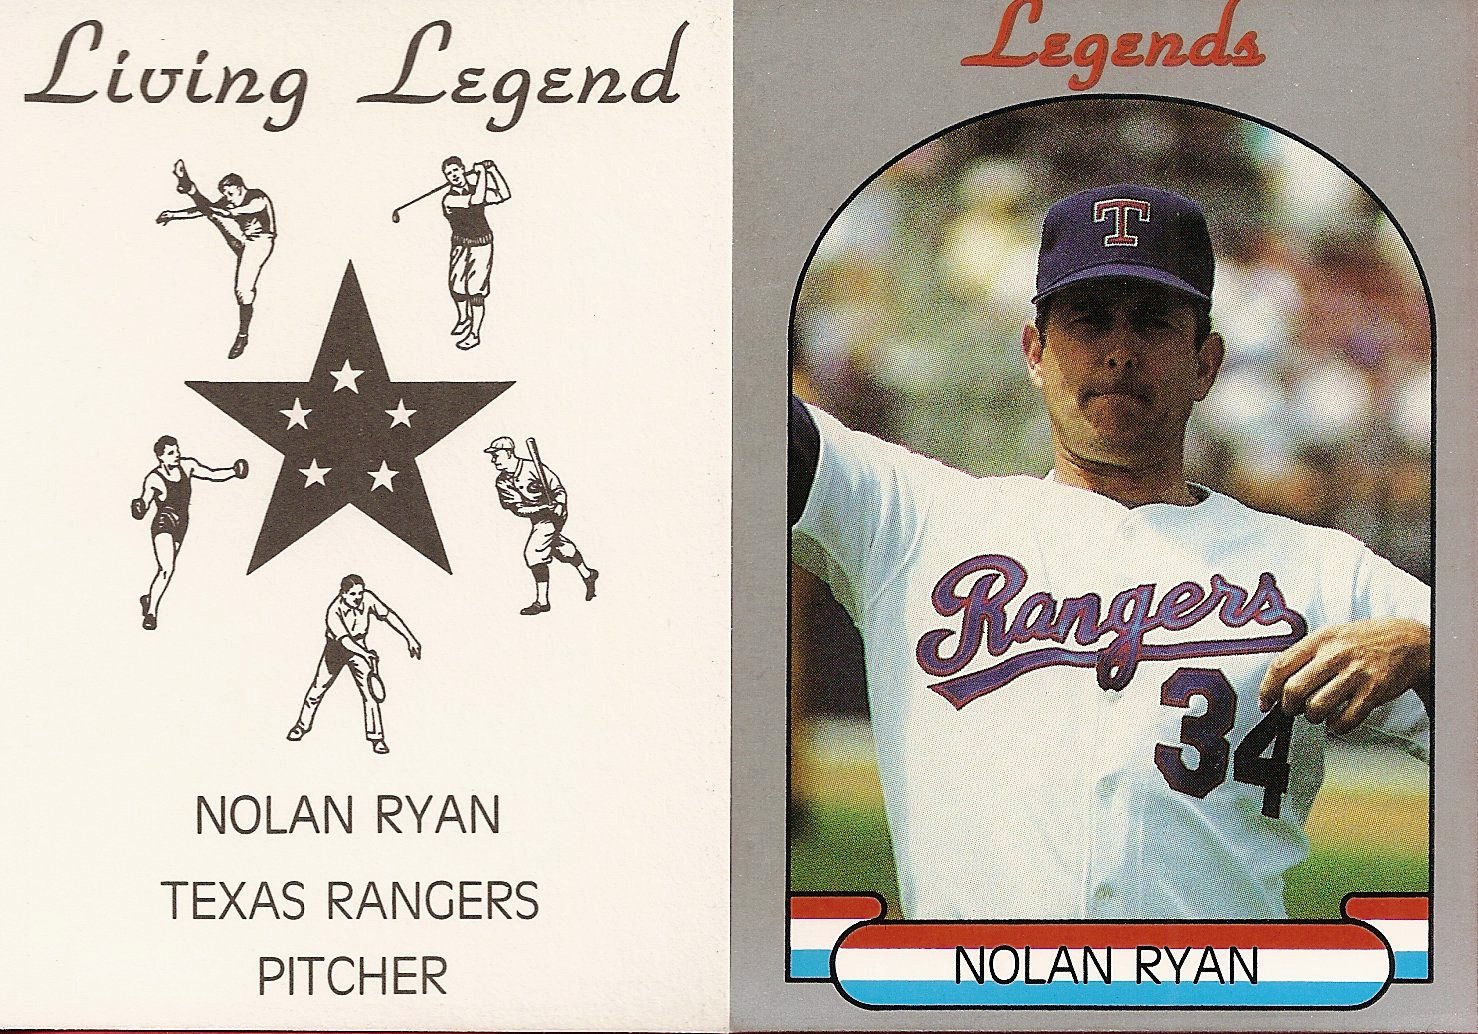 1990 Living Legends Gray (gray border with banner)